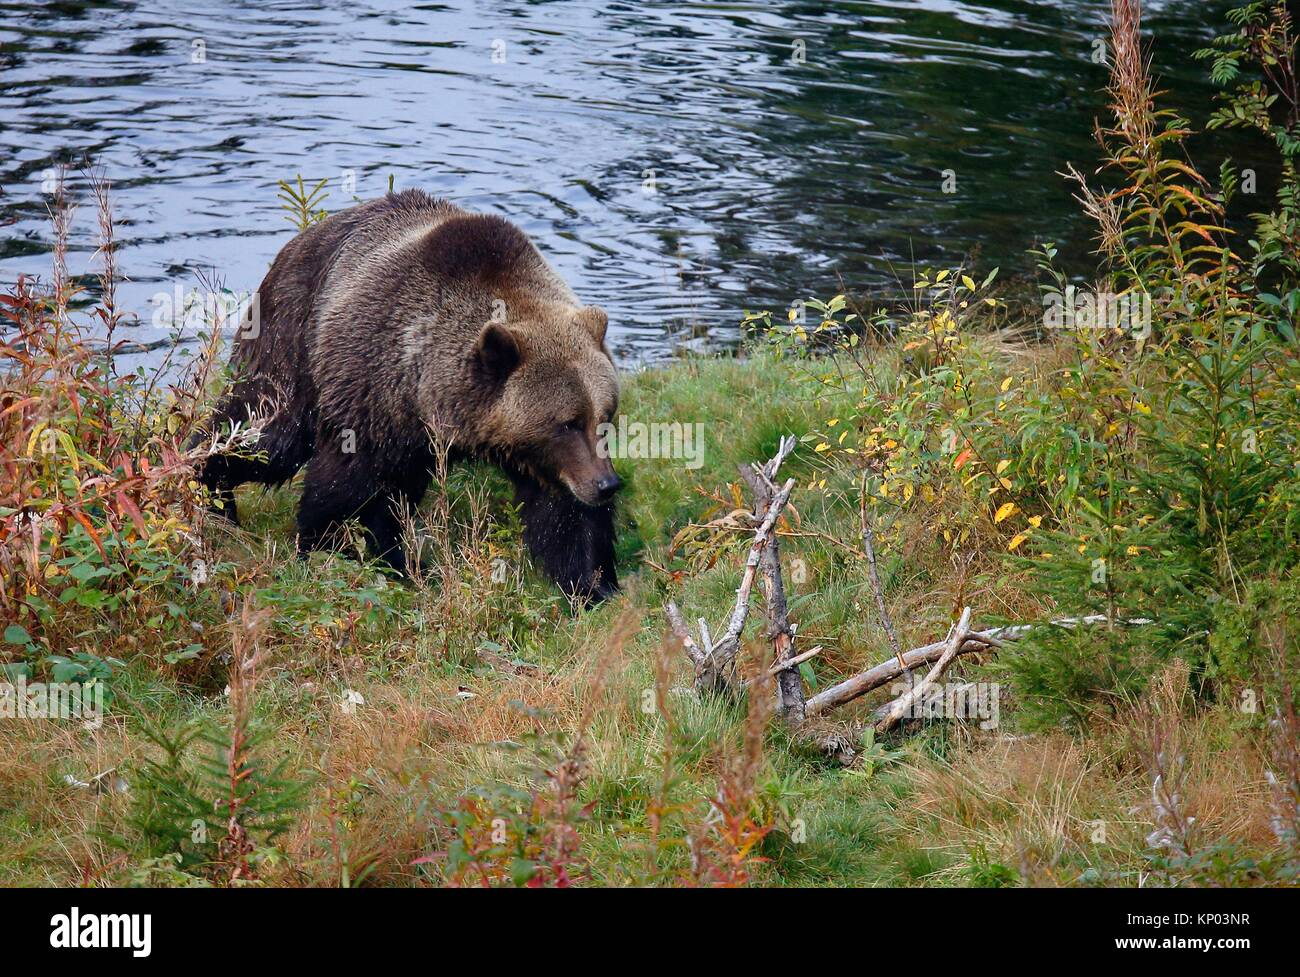 Brown bear Ursus arctos Dalarna Sweden Stock Photo